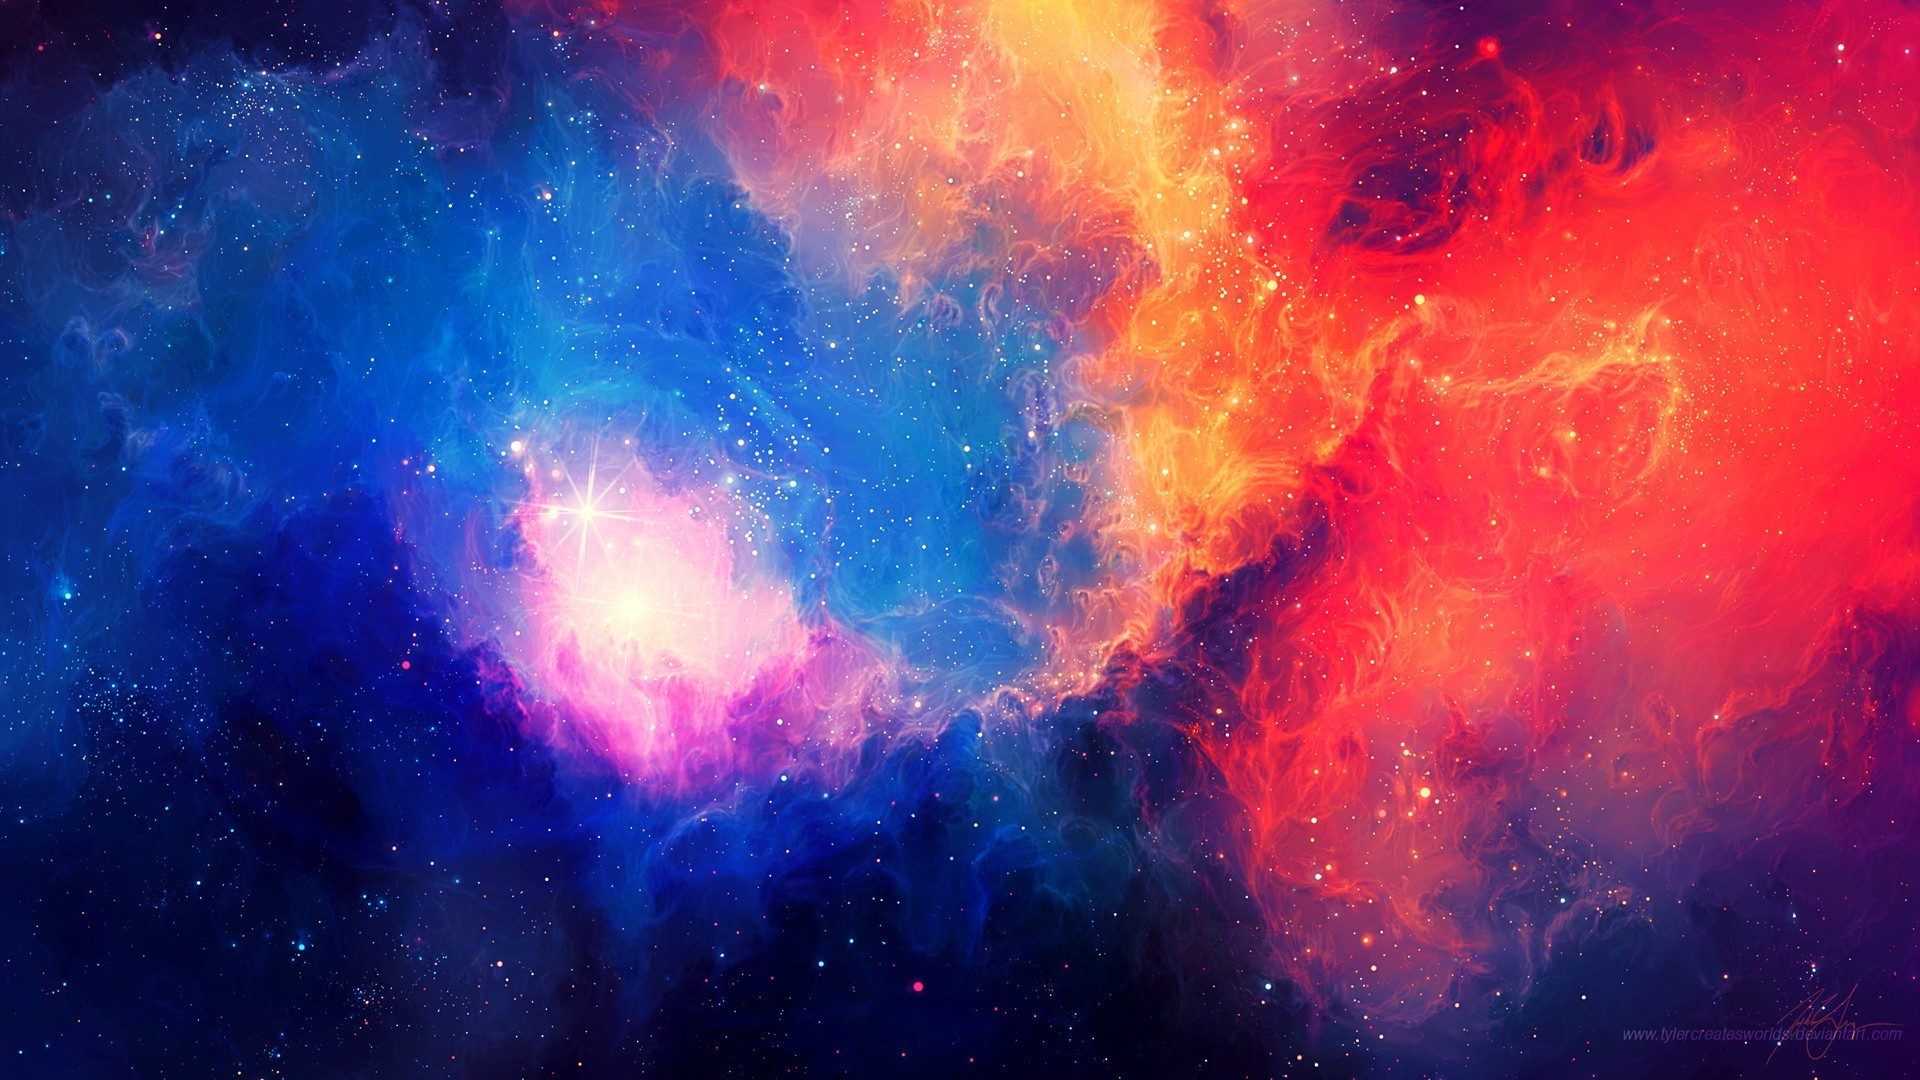 4k Iphone Wallpapers: 4K Galaxy Wallpaper (62+ Images